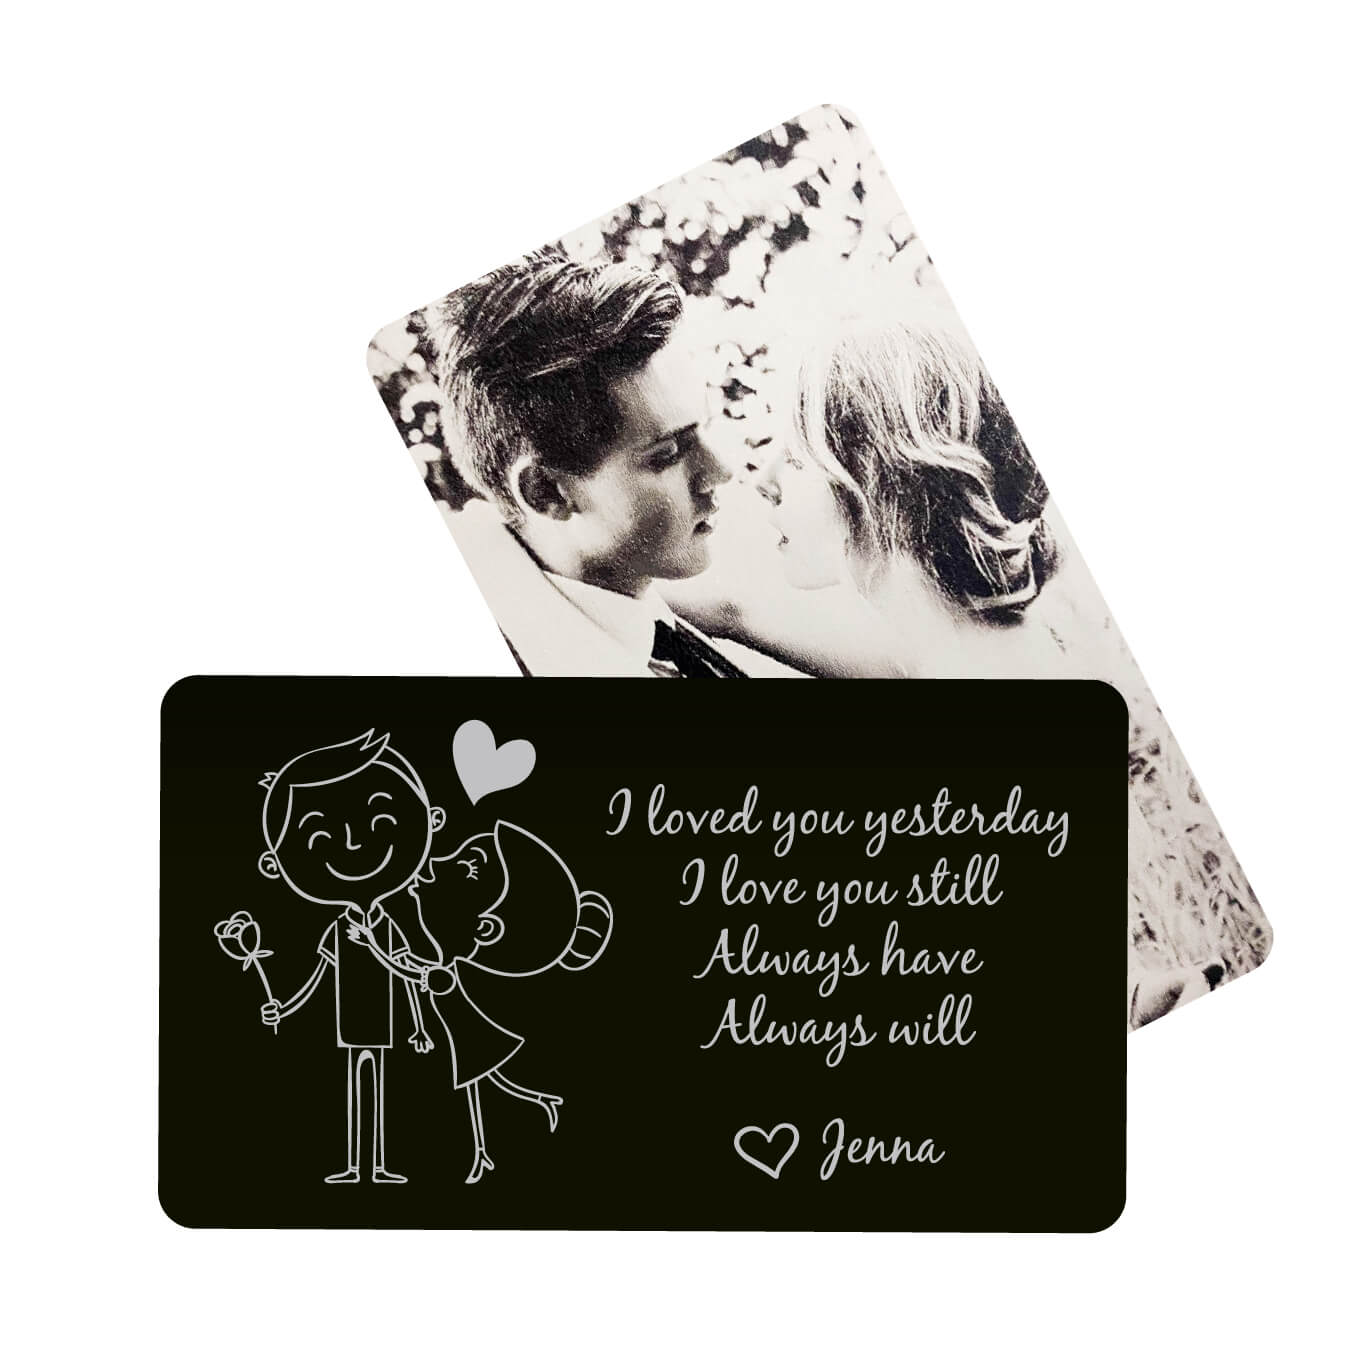 I Love You Still Personalized Metal Wallet Card